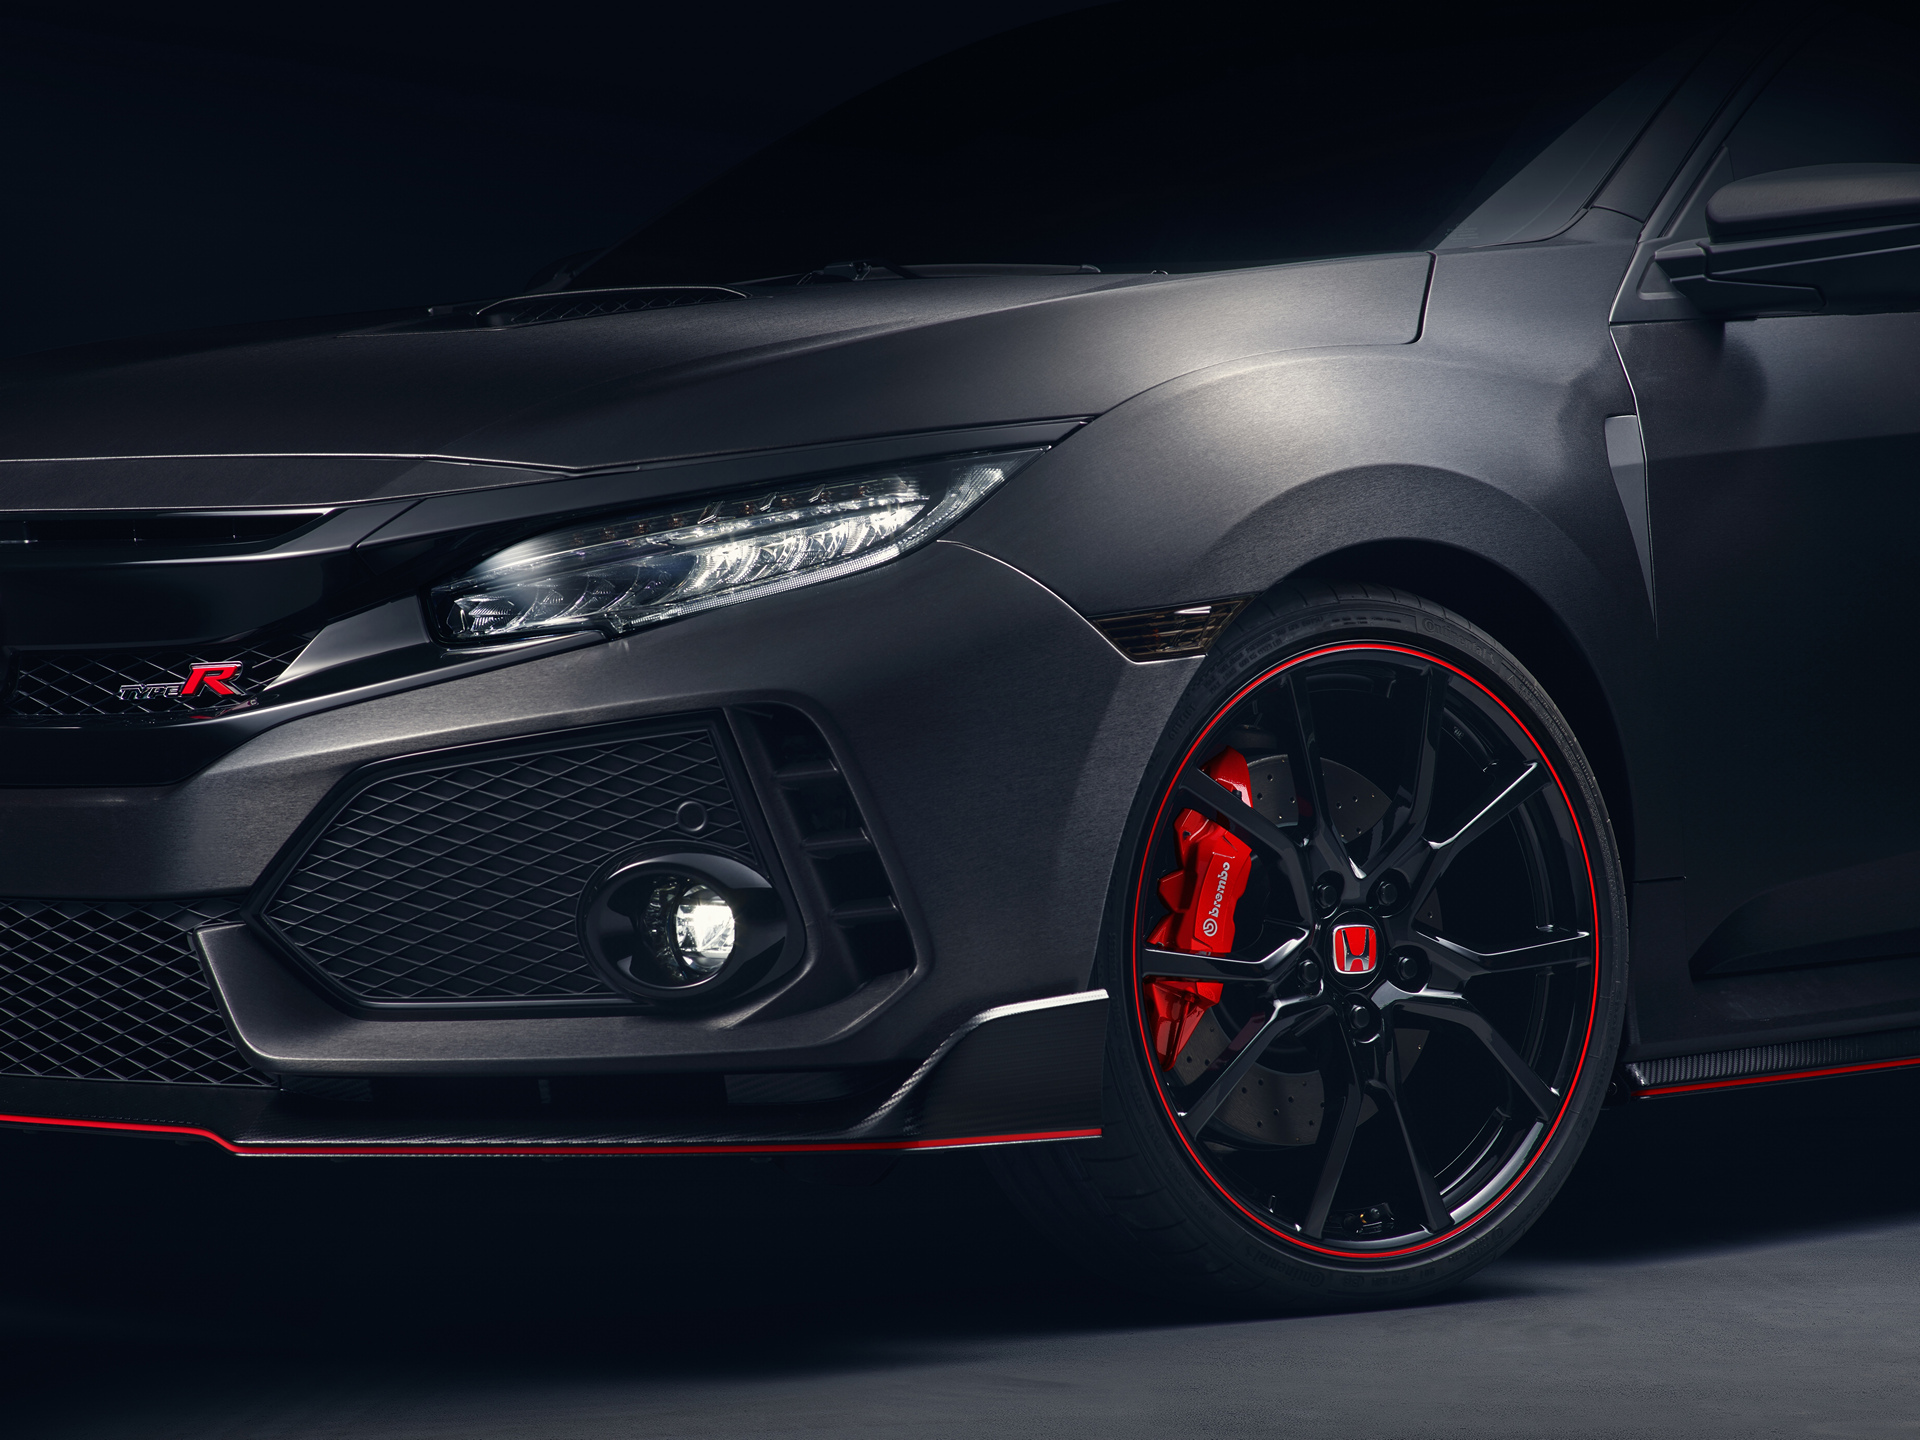 Honda Civic Type R Prototype © Honda Motor Co., Ltd.